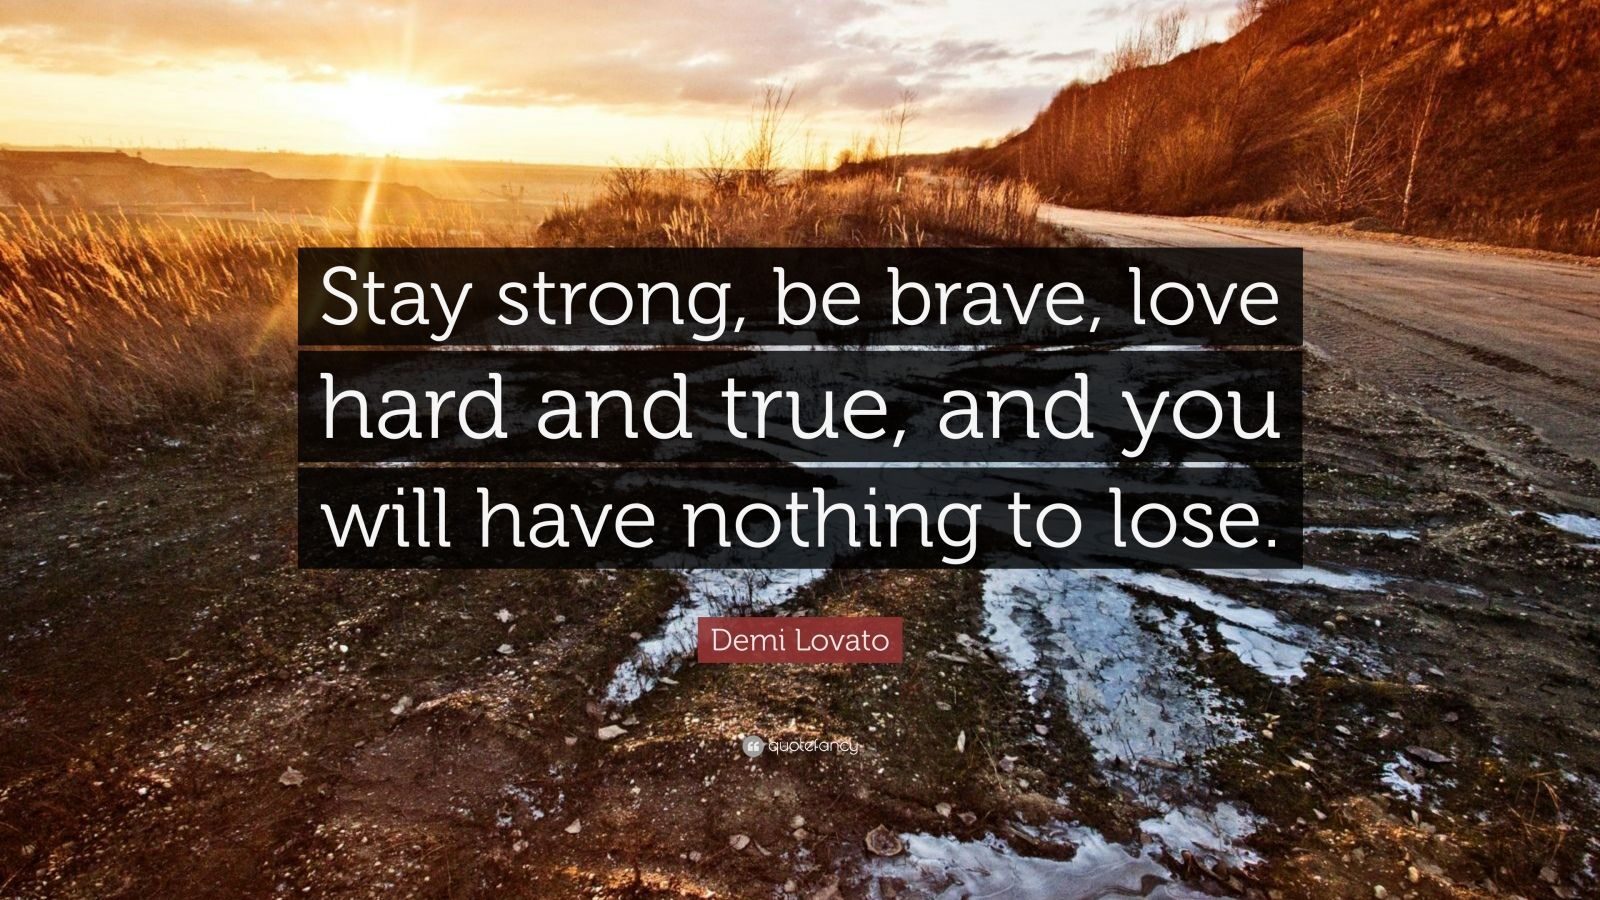 """Demi Lovato Quote: """"Stay strong, be brave, love hard and true, and you will have nothing to lose."""""""